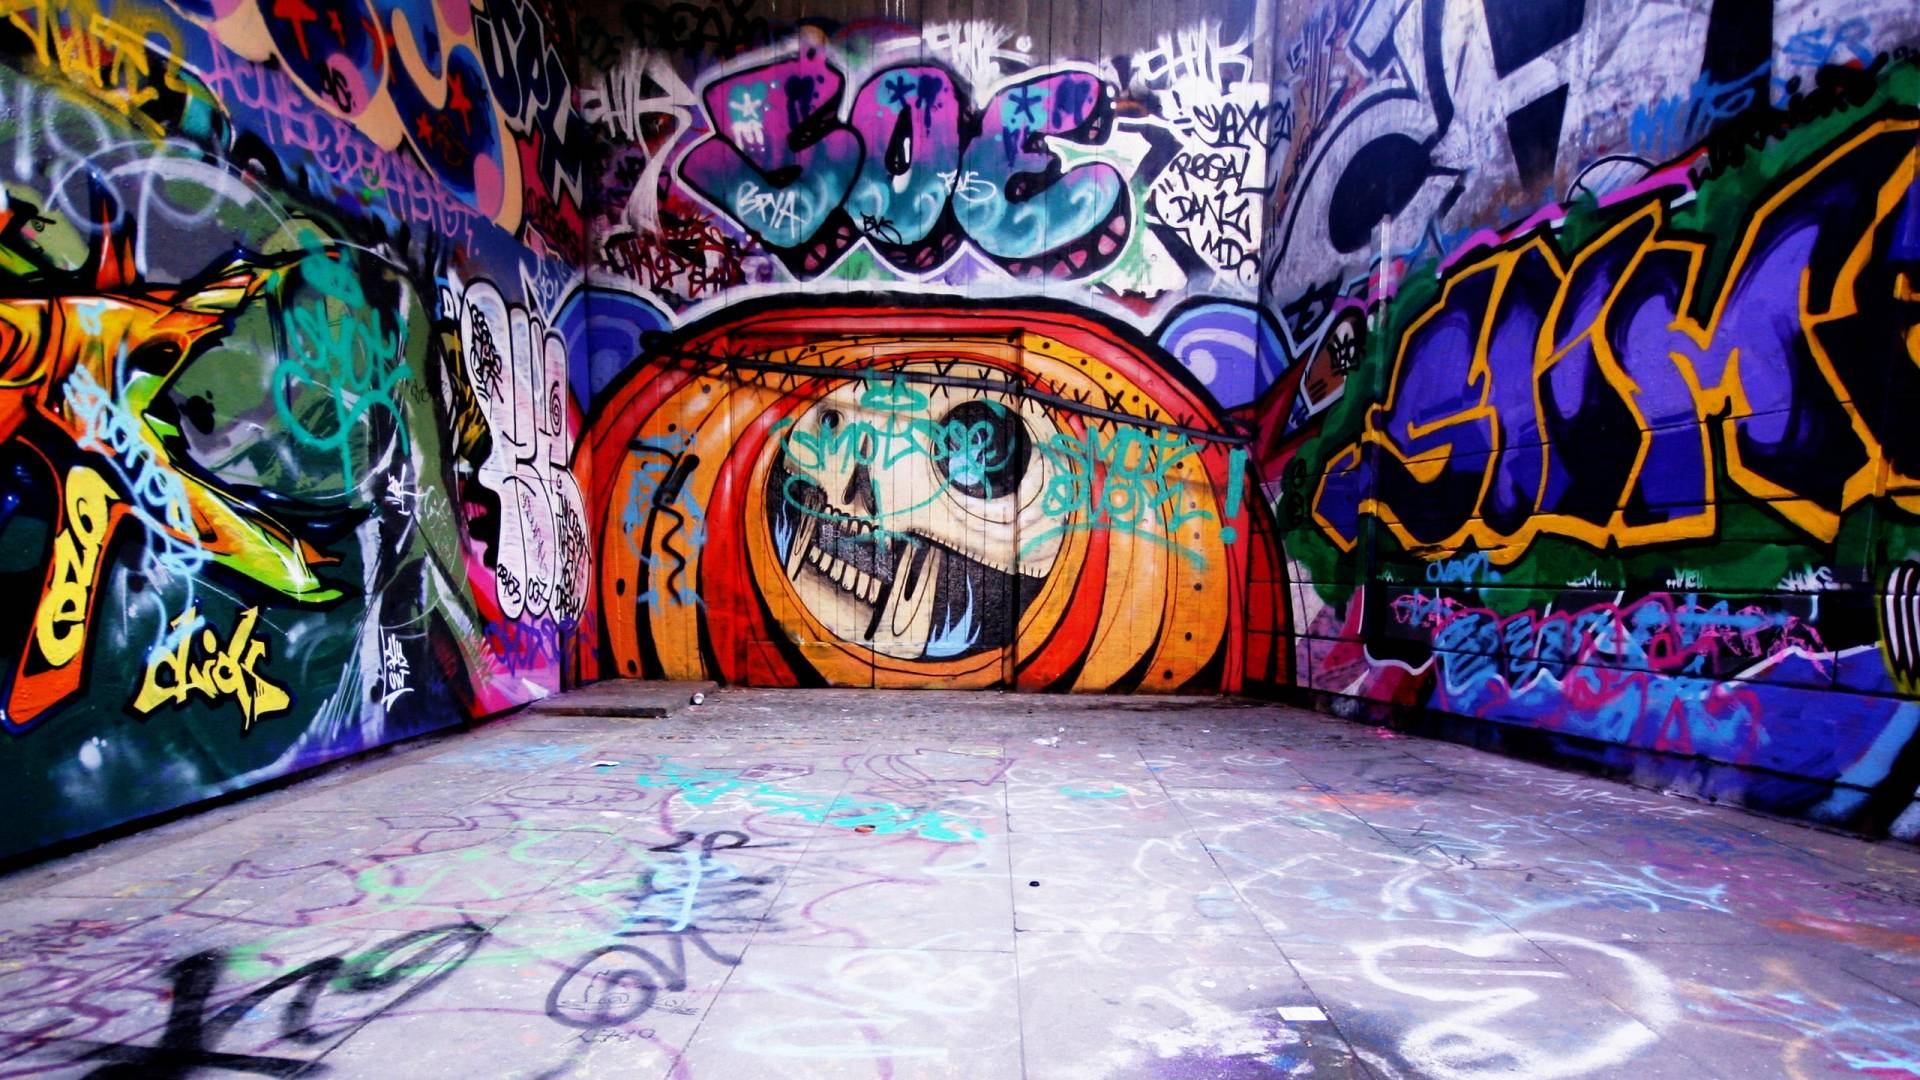 street art cool graffiti wallpapers - photo #16